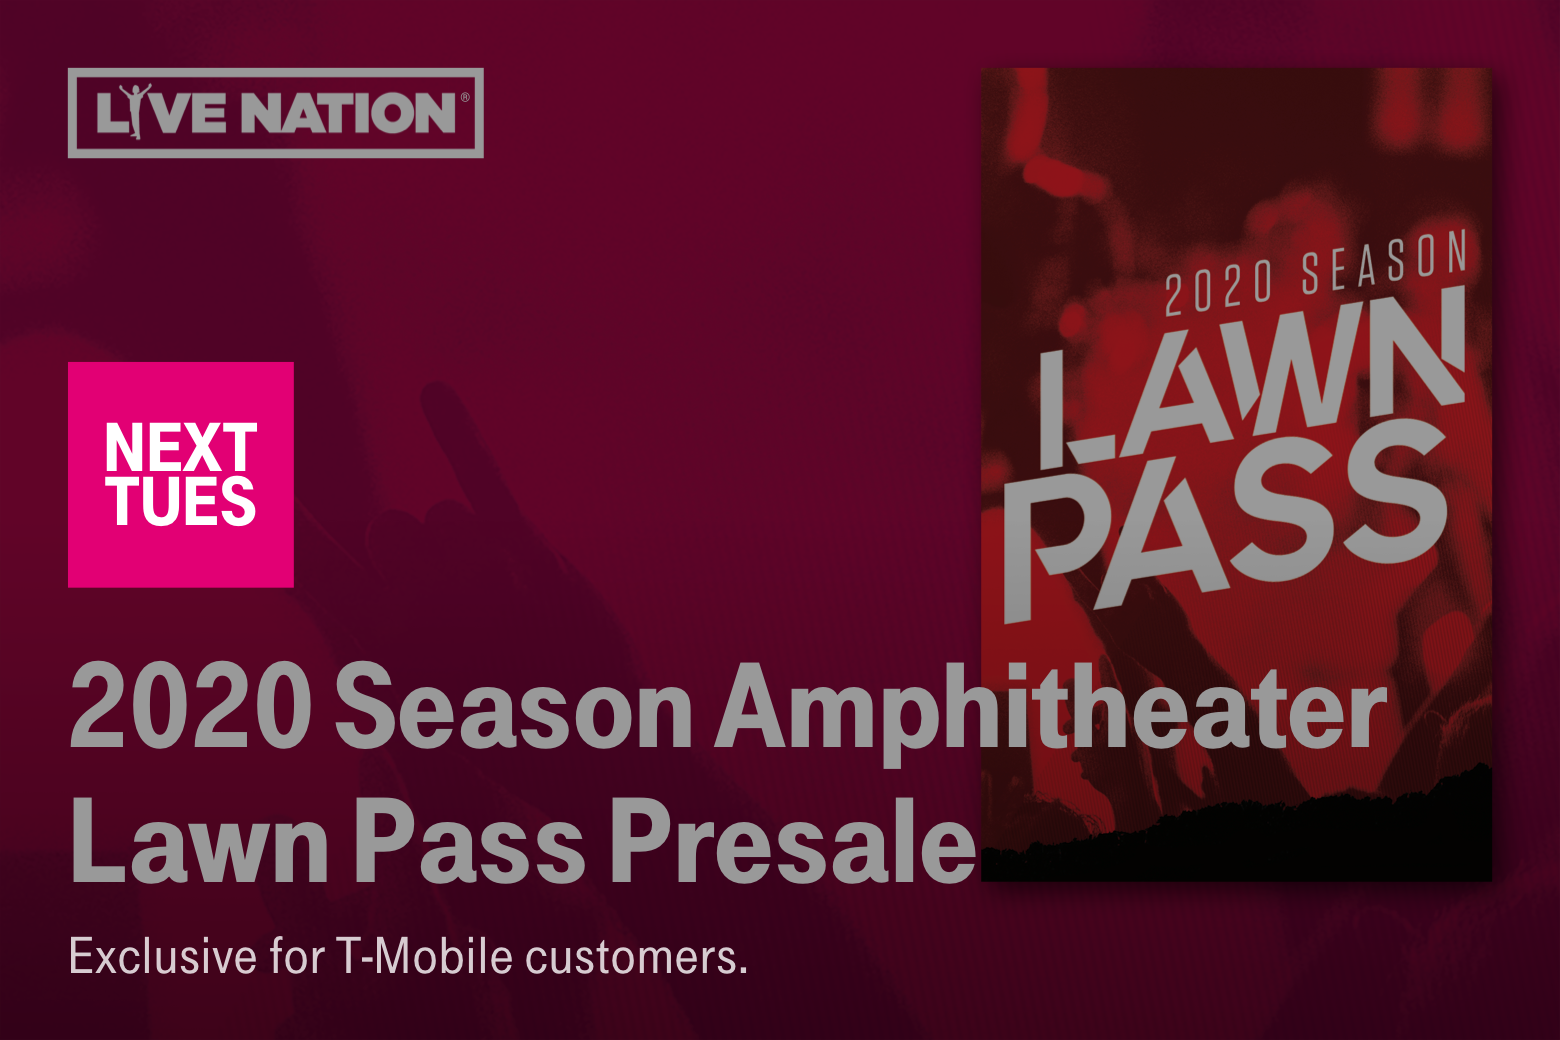 Live Nation. Next Tuesday. 2020 Season Amphitheater Lawn Pass Presale. Exclusive for T-Mobile customers.